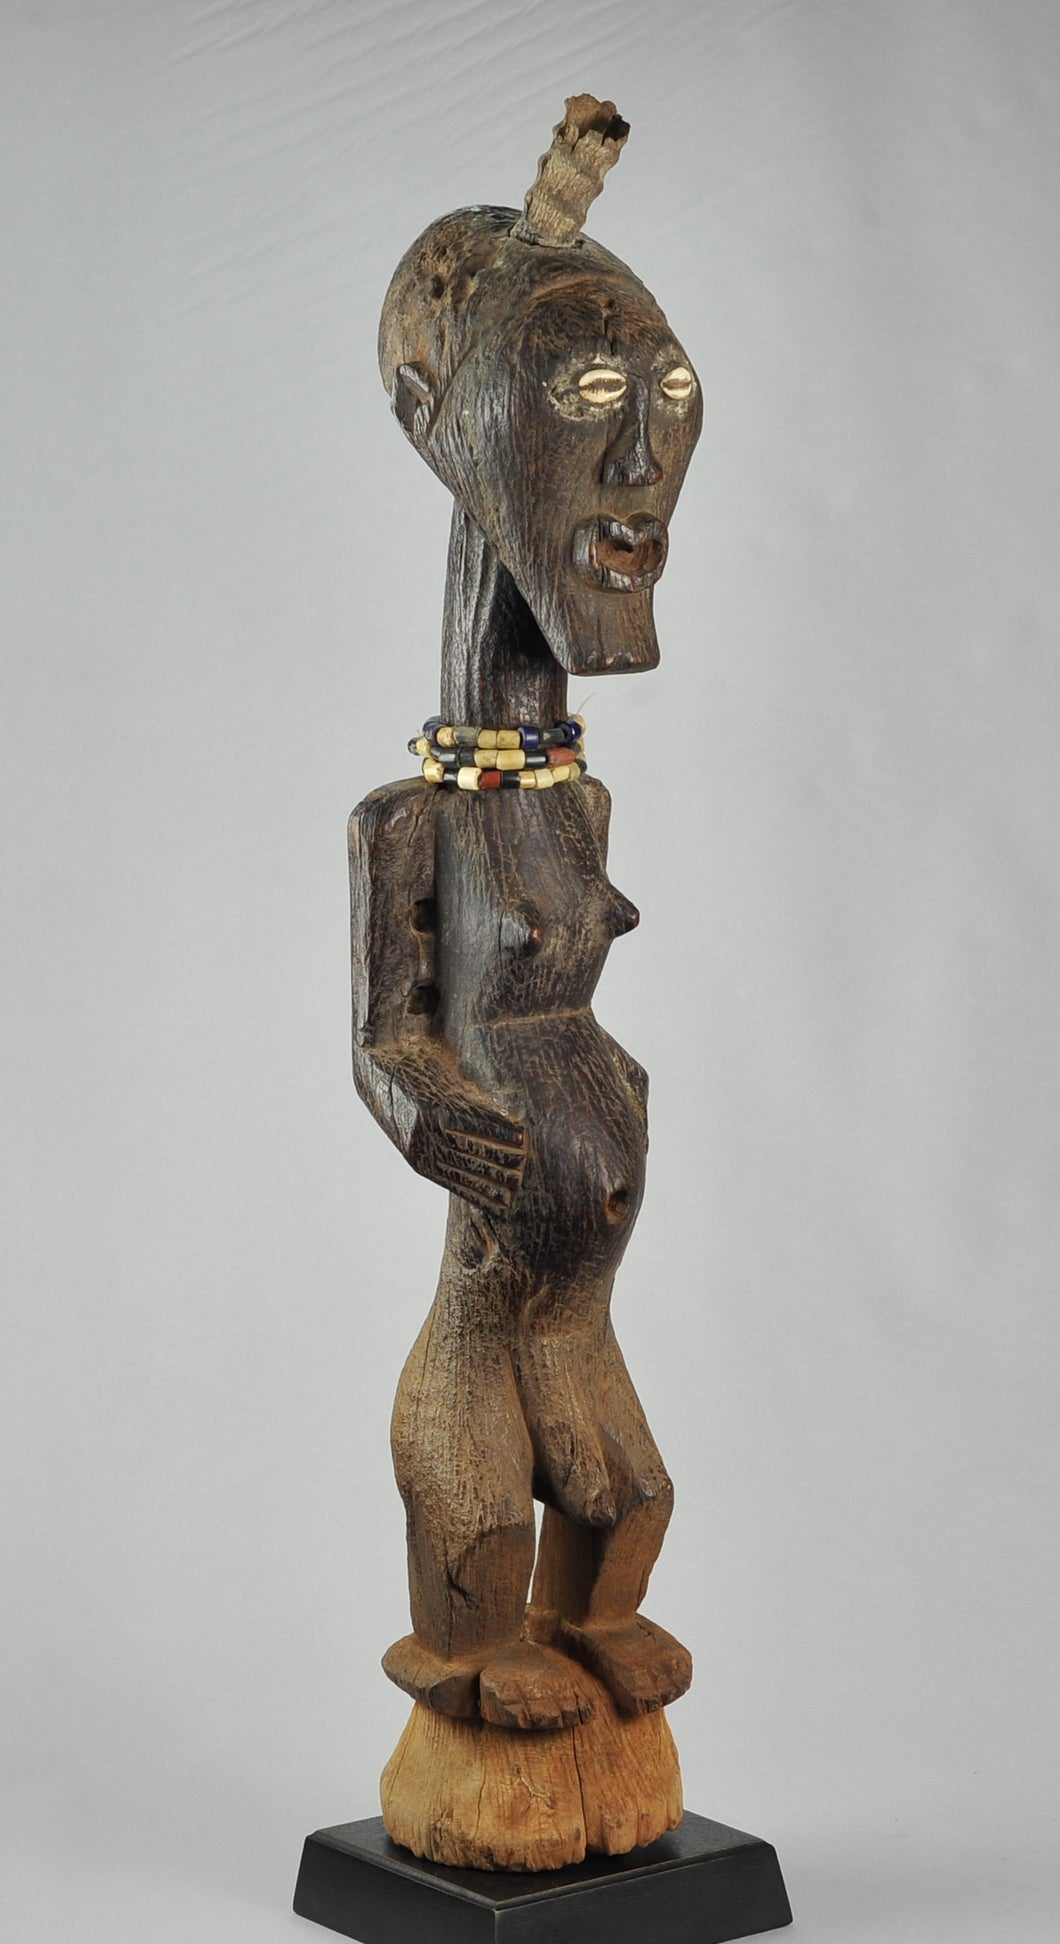 MC1341 Grand Fétiche SONGYE Large Power Figure Fetish Congo Rdc